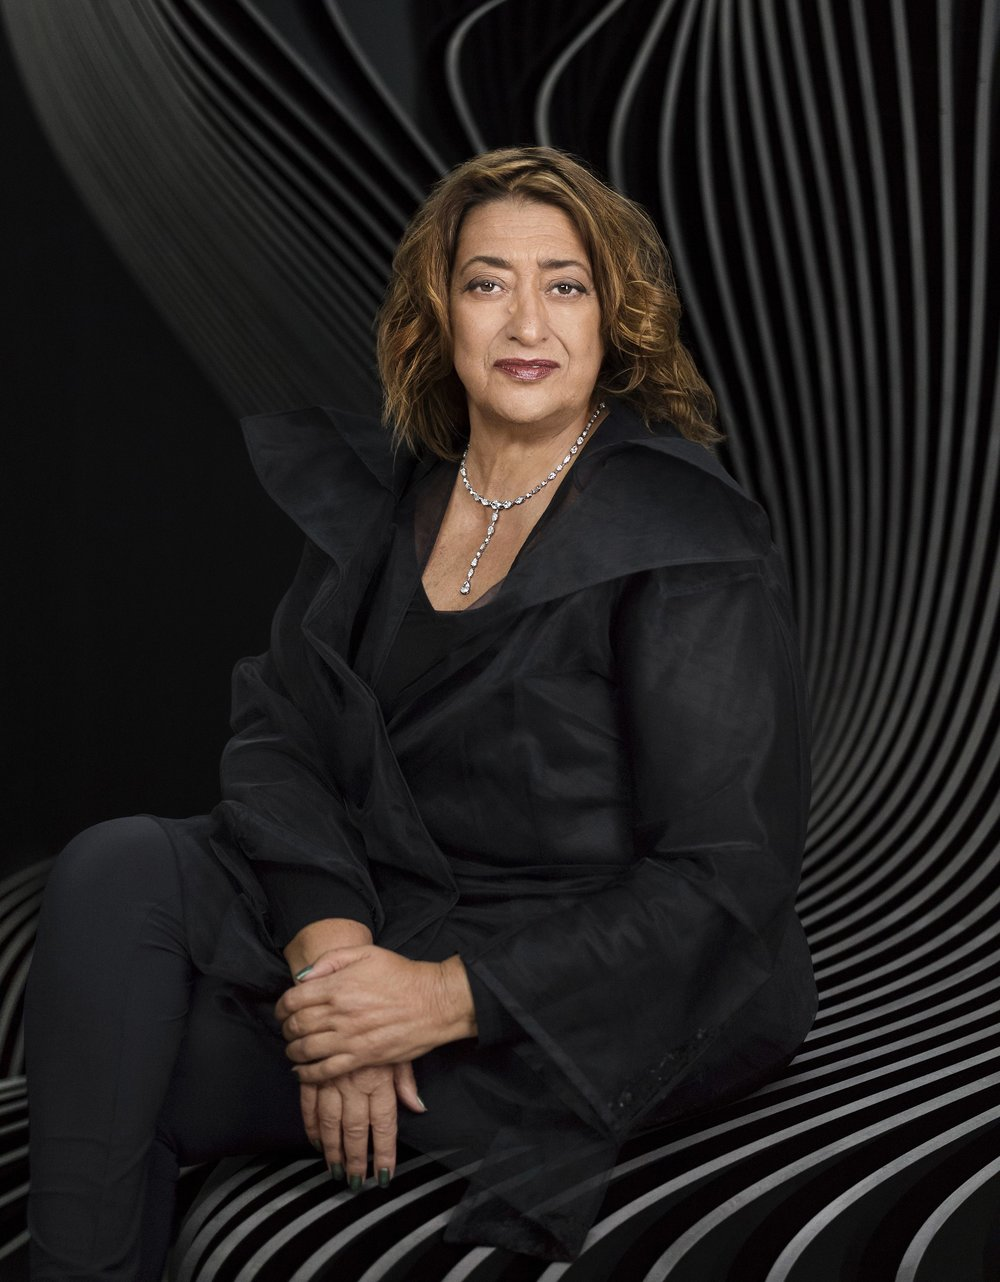 Zaha Hadid - First woman to be awarded the Pritzker Architecture Prize, the first and only woman to receive the Royal Gold Medal from the Royal Institute of British Architects